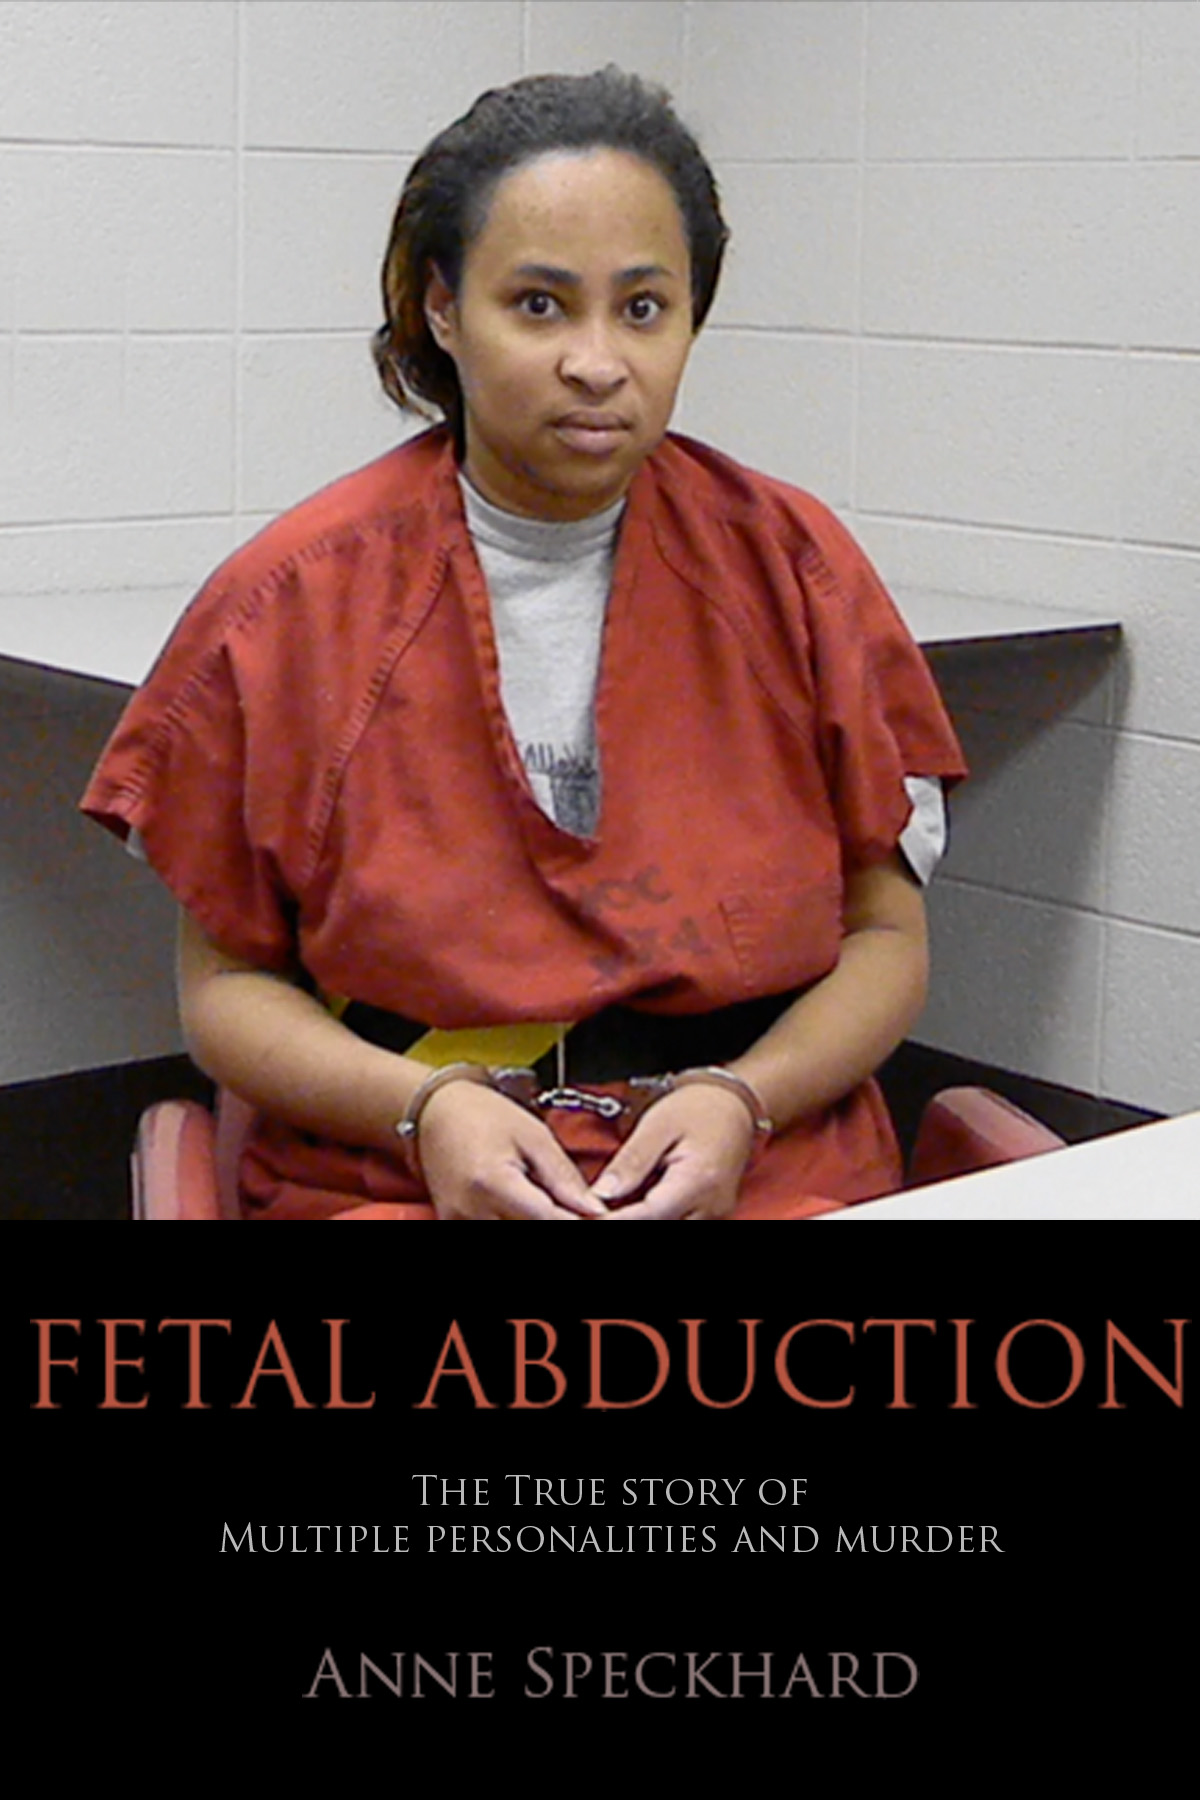 Fetal Abduction